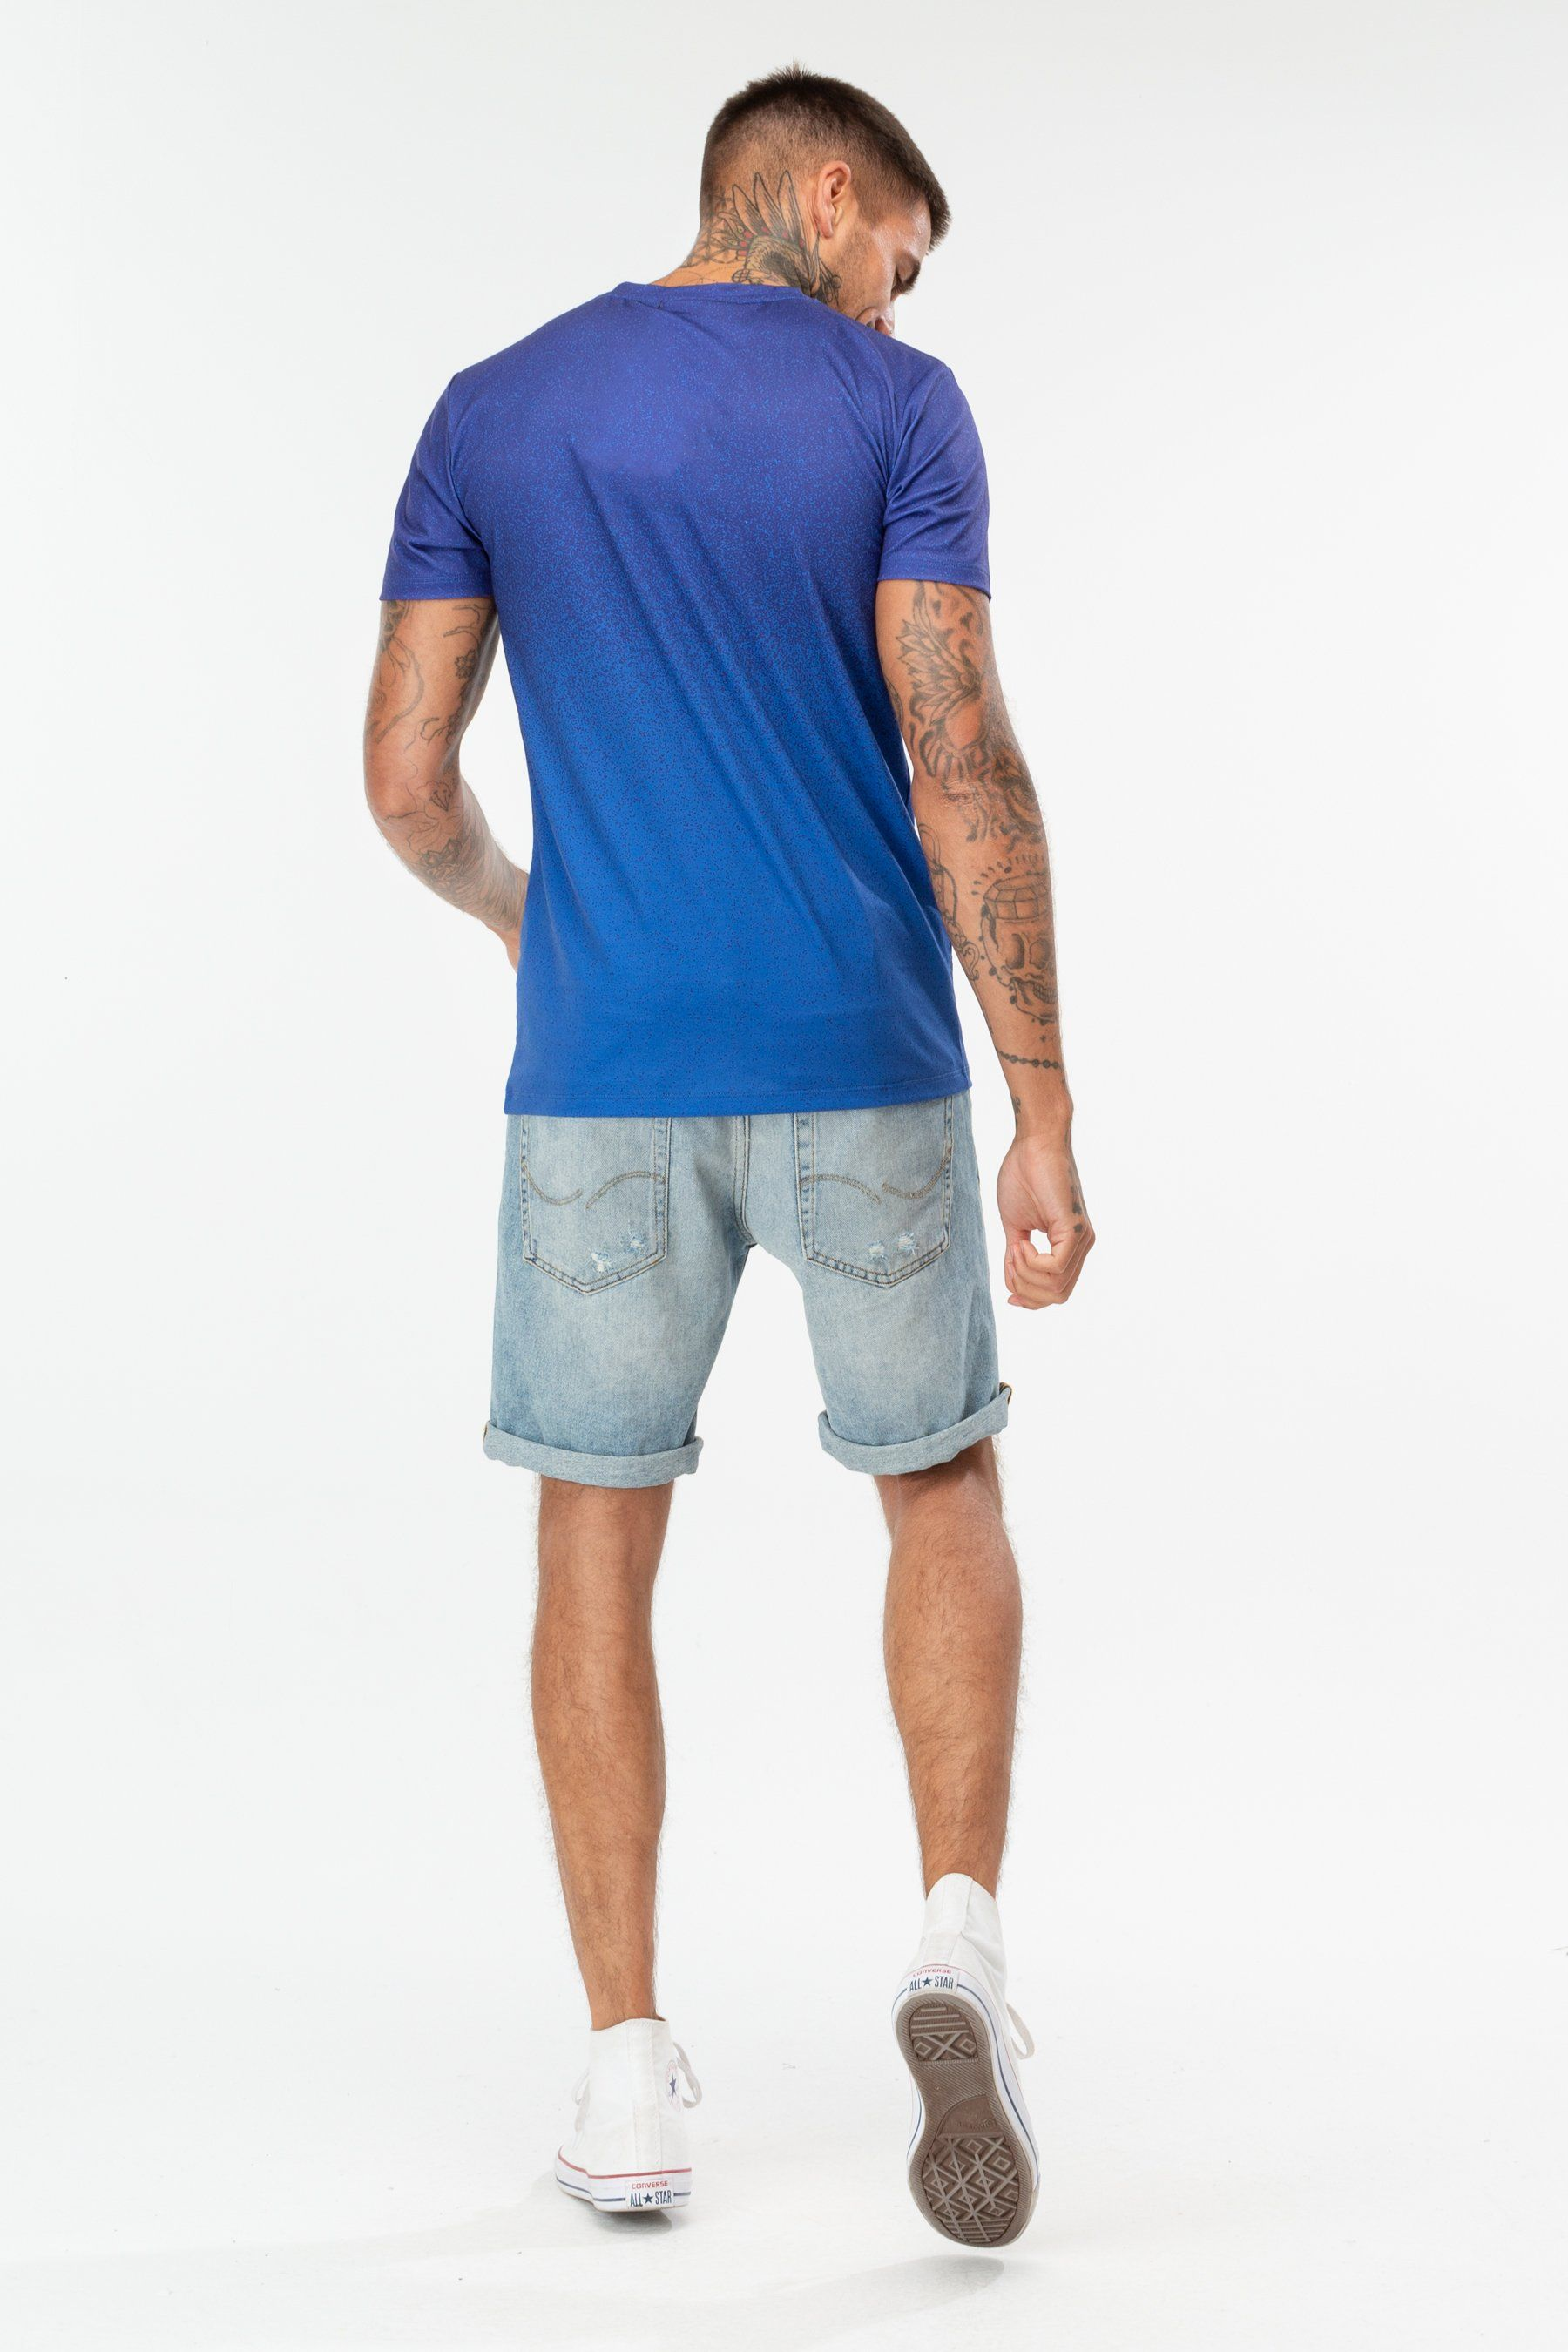 Hype Blue Speckle Fade Crest Mens T-Shirt